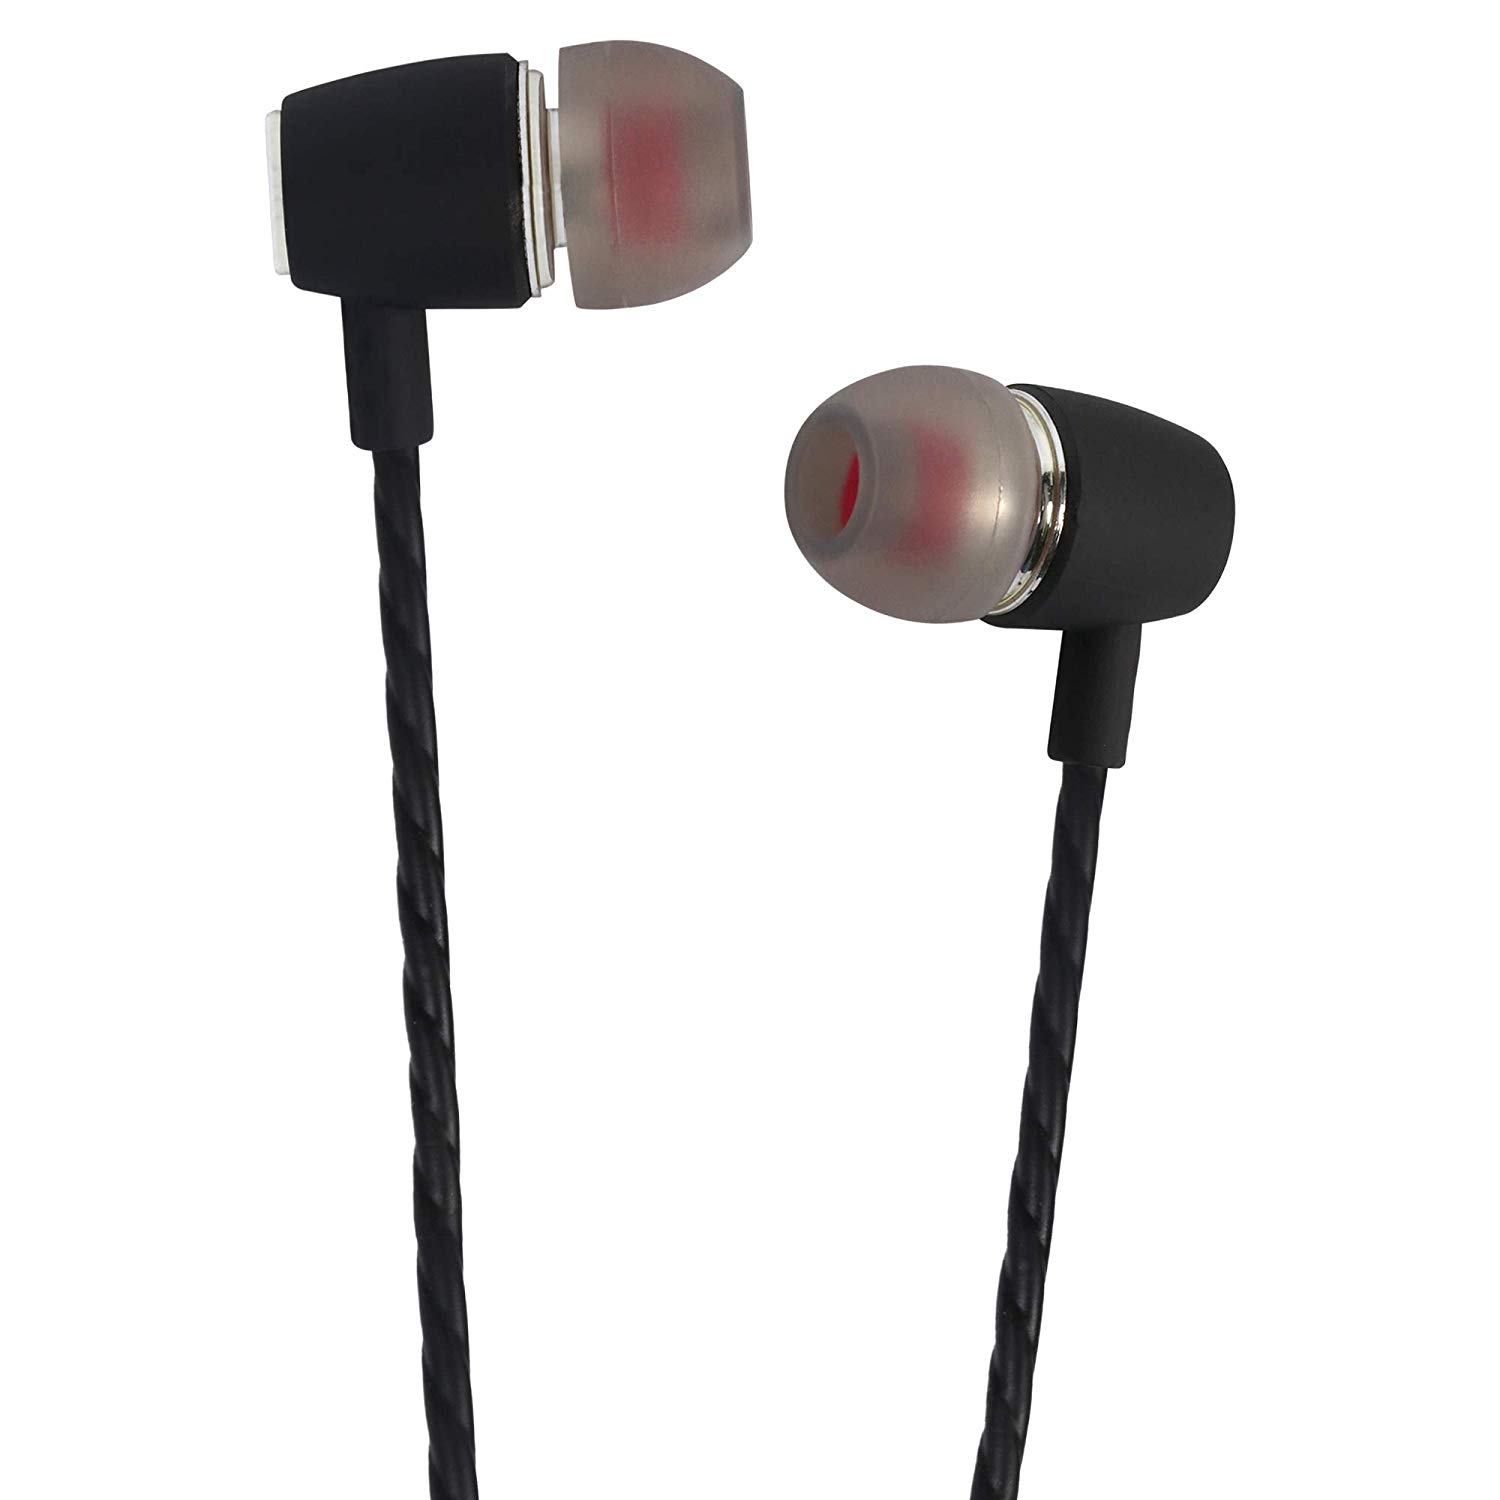 Rednix Noise Isolating in-Ear Headphones with Pure Sound and Powerful Bass, Earbuds with High Sensitivity Microphone and Volume Control, Headphones - Black